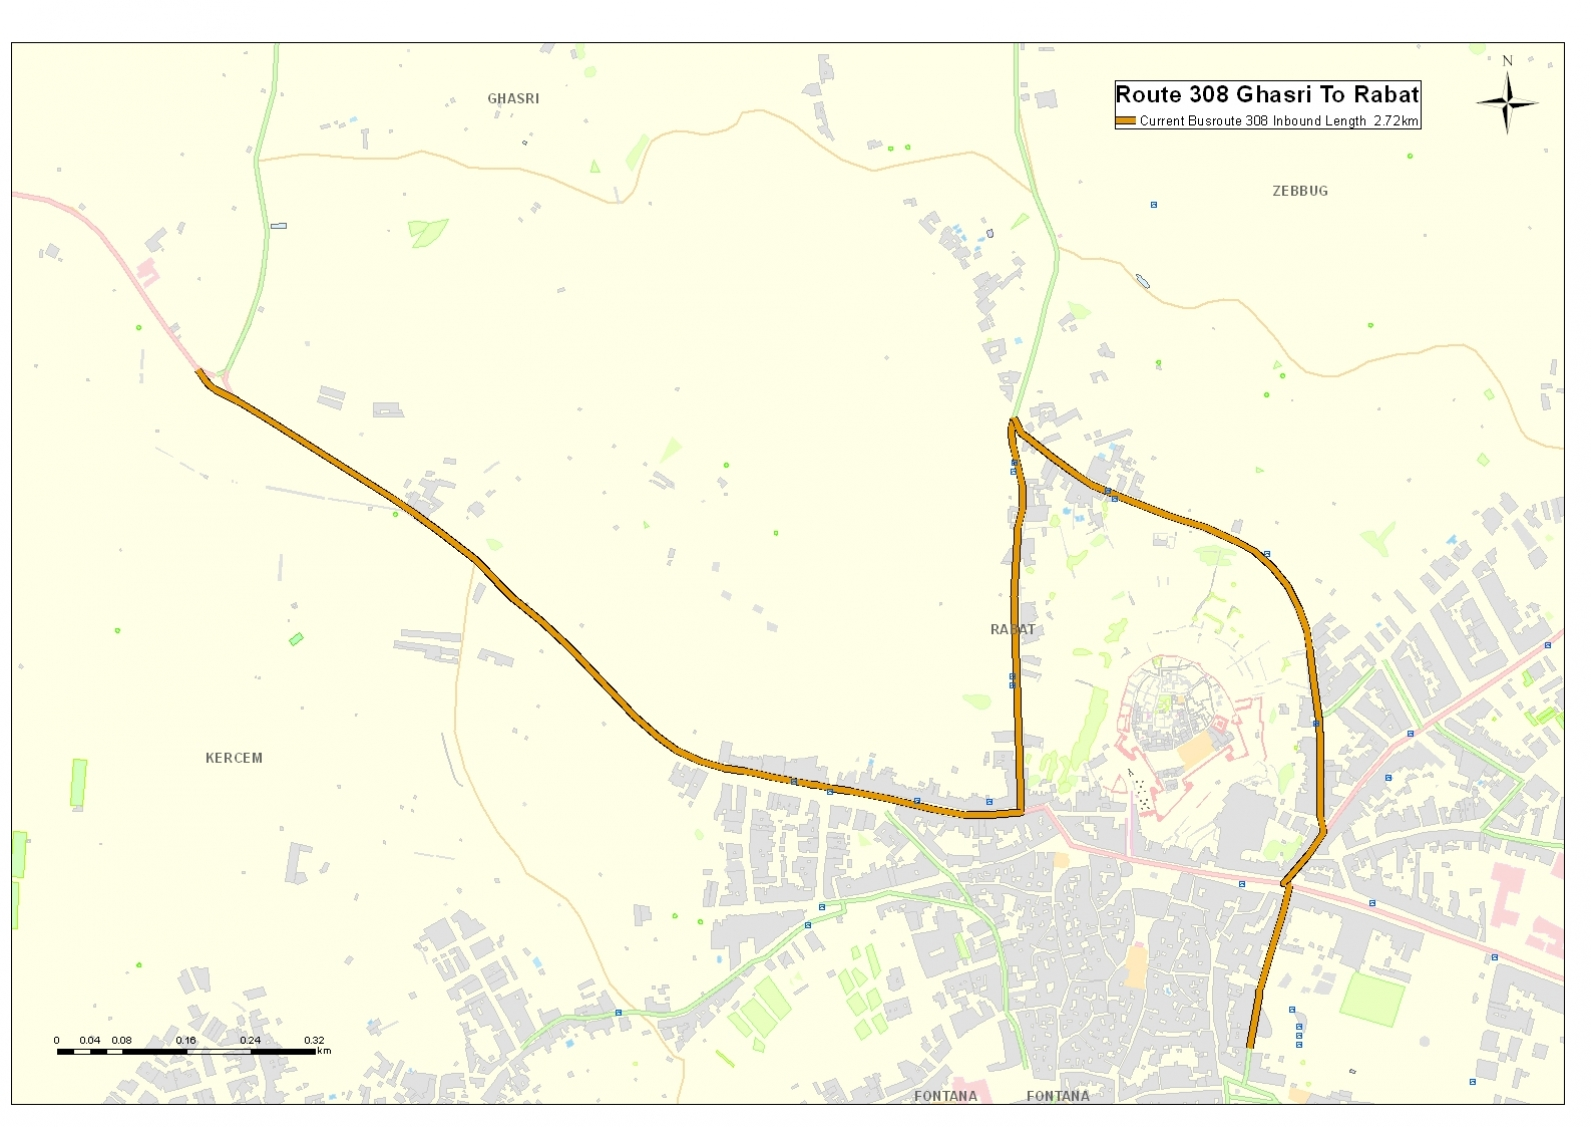 Land-current-network-routes-and-schedules-Gozo-15